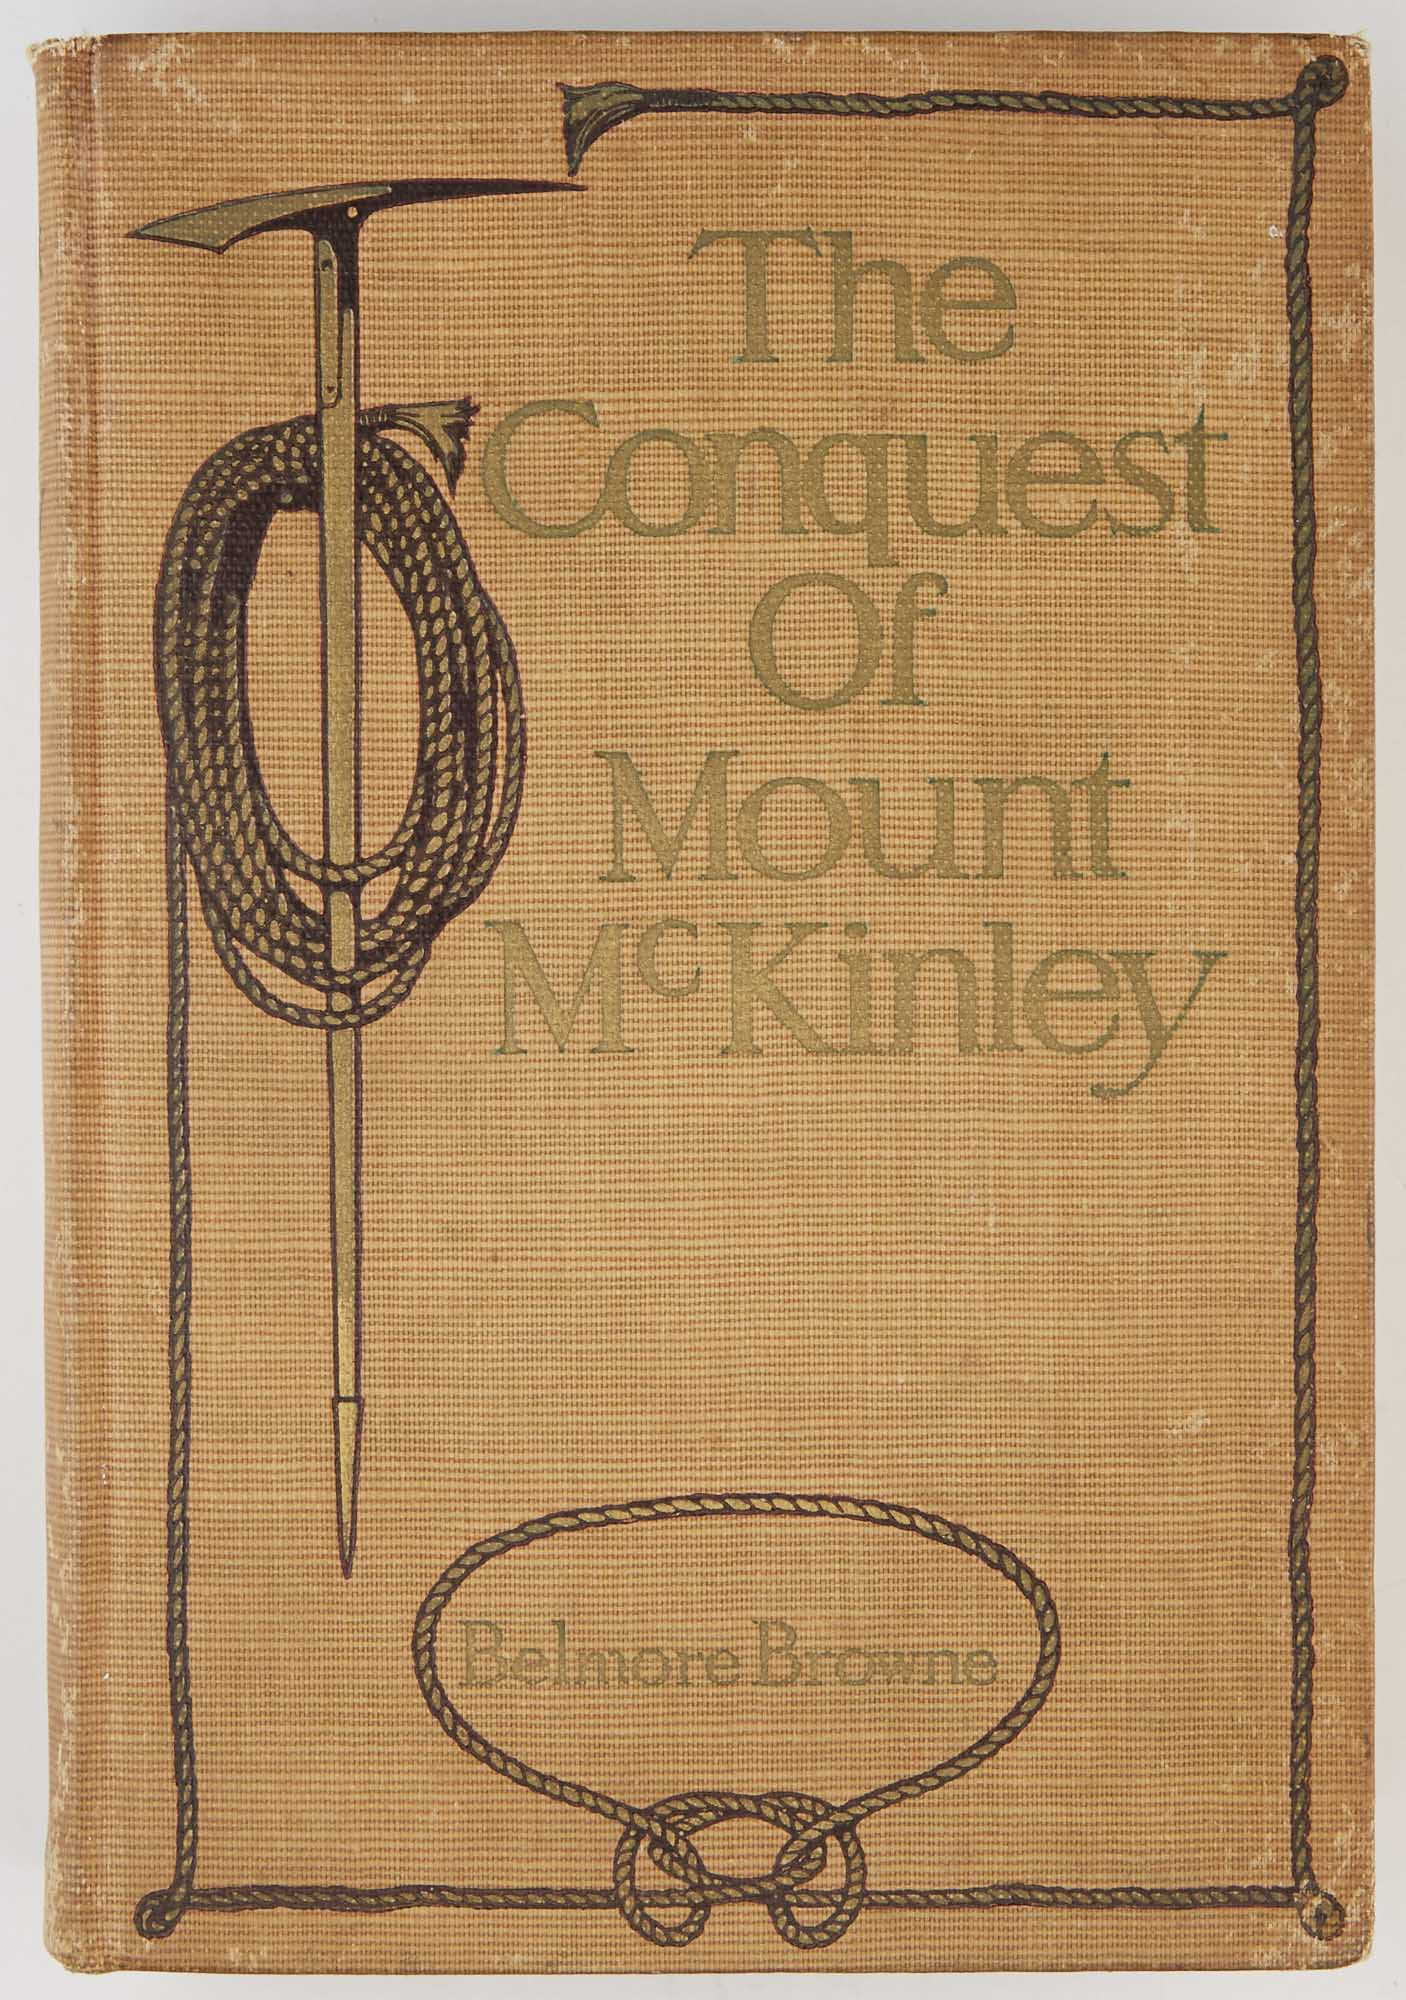 Lot image - [ALASKA]  BROWNE, BELMORE. The Conquest of Mount McKinley: the Story of Three Expeditions through the Alaskan Wilderness to Mount McKinley, North Americas Highest and Most Inaccessible Mountain.